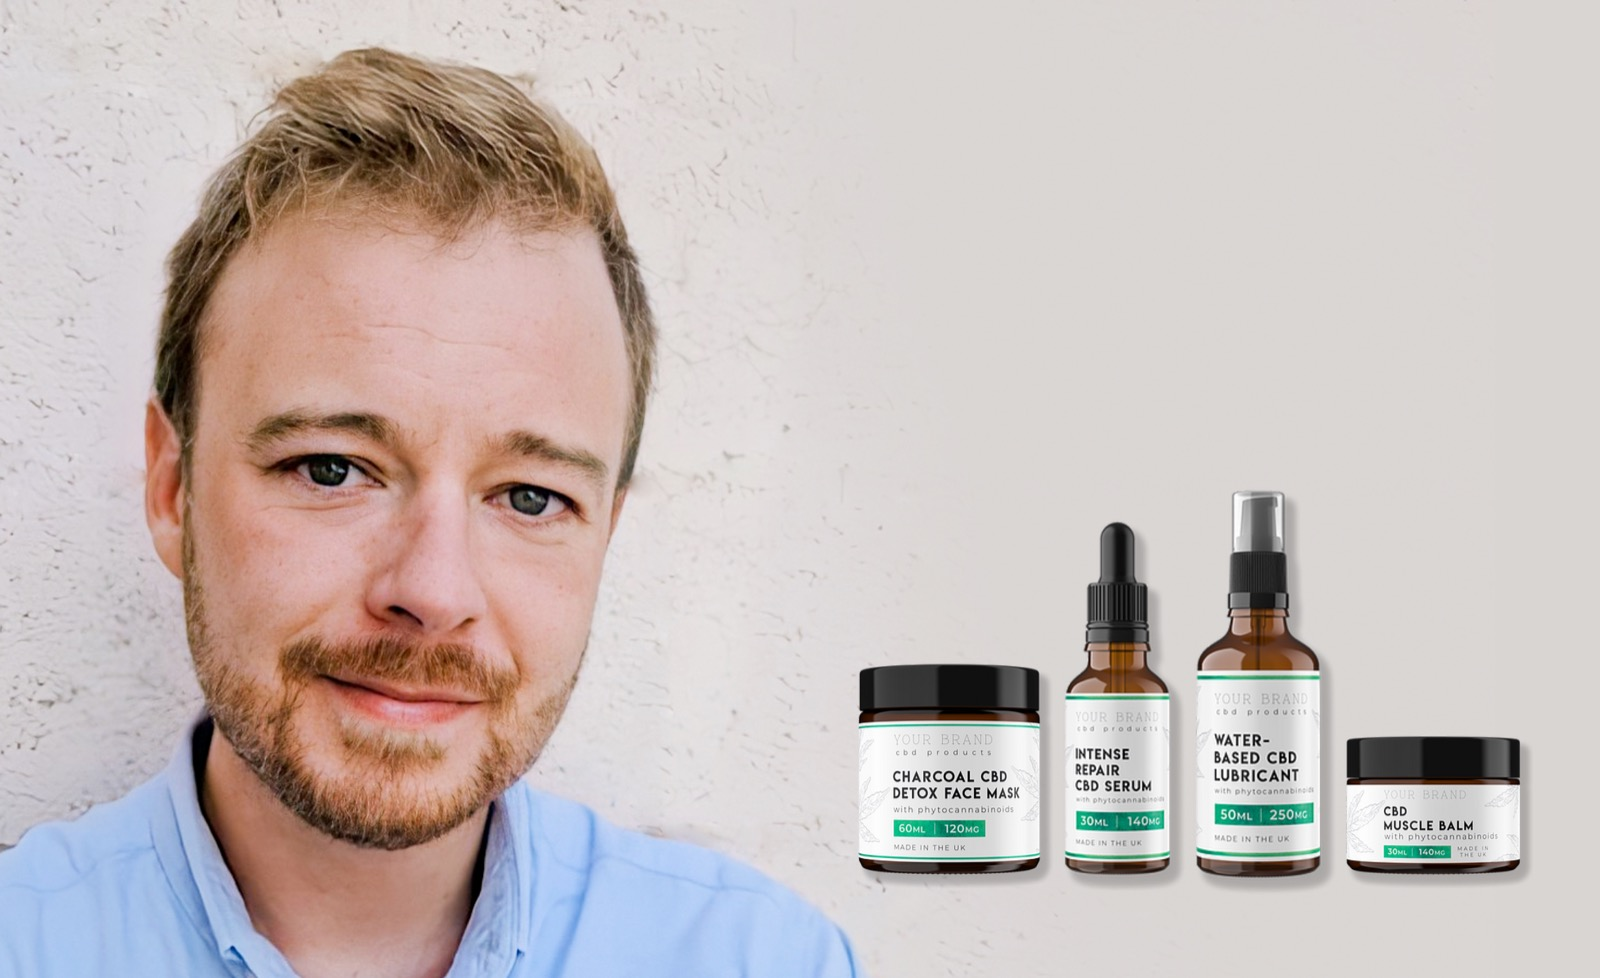 Rick with CBD products